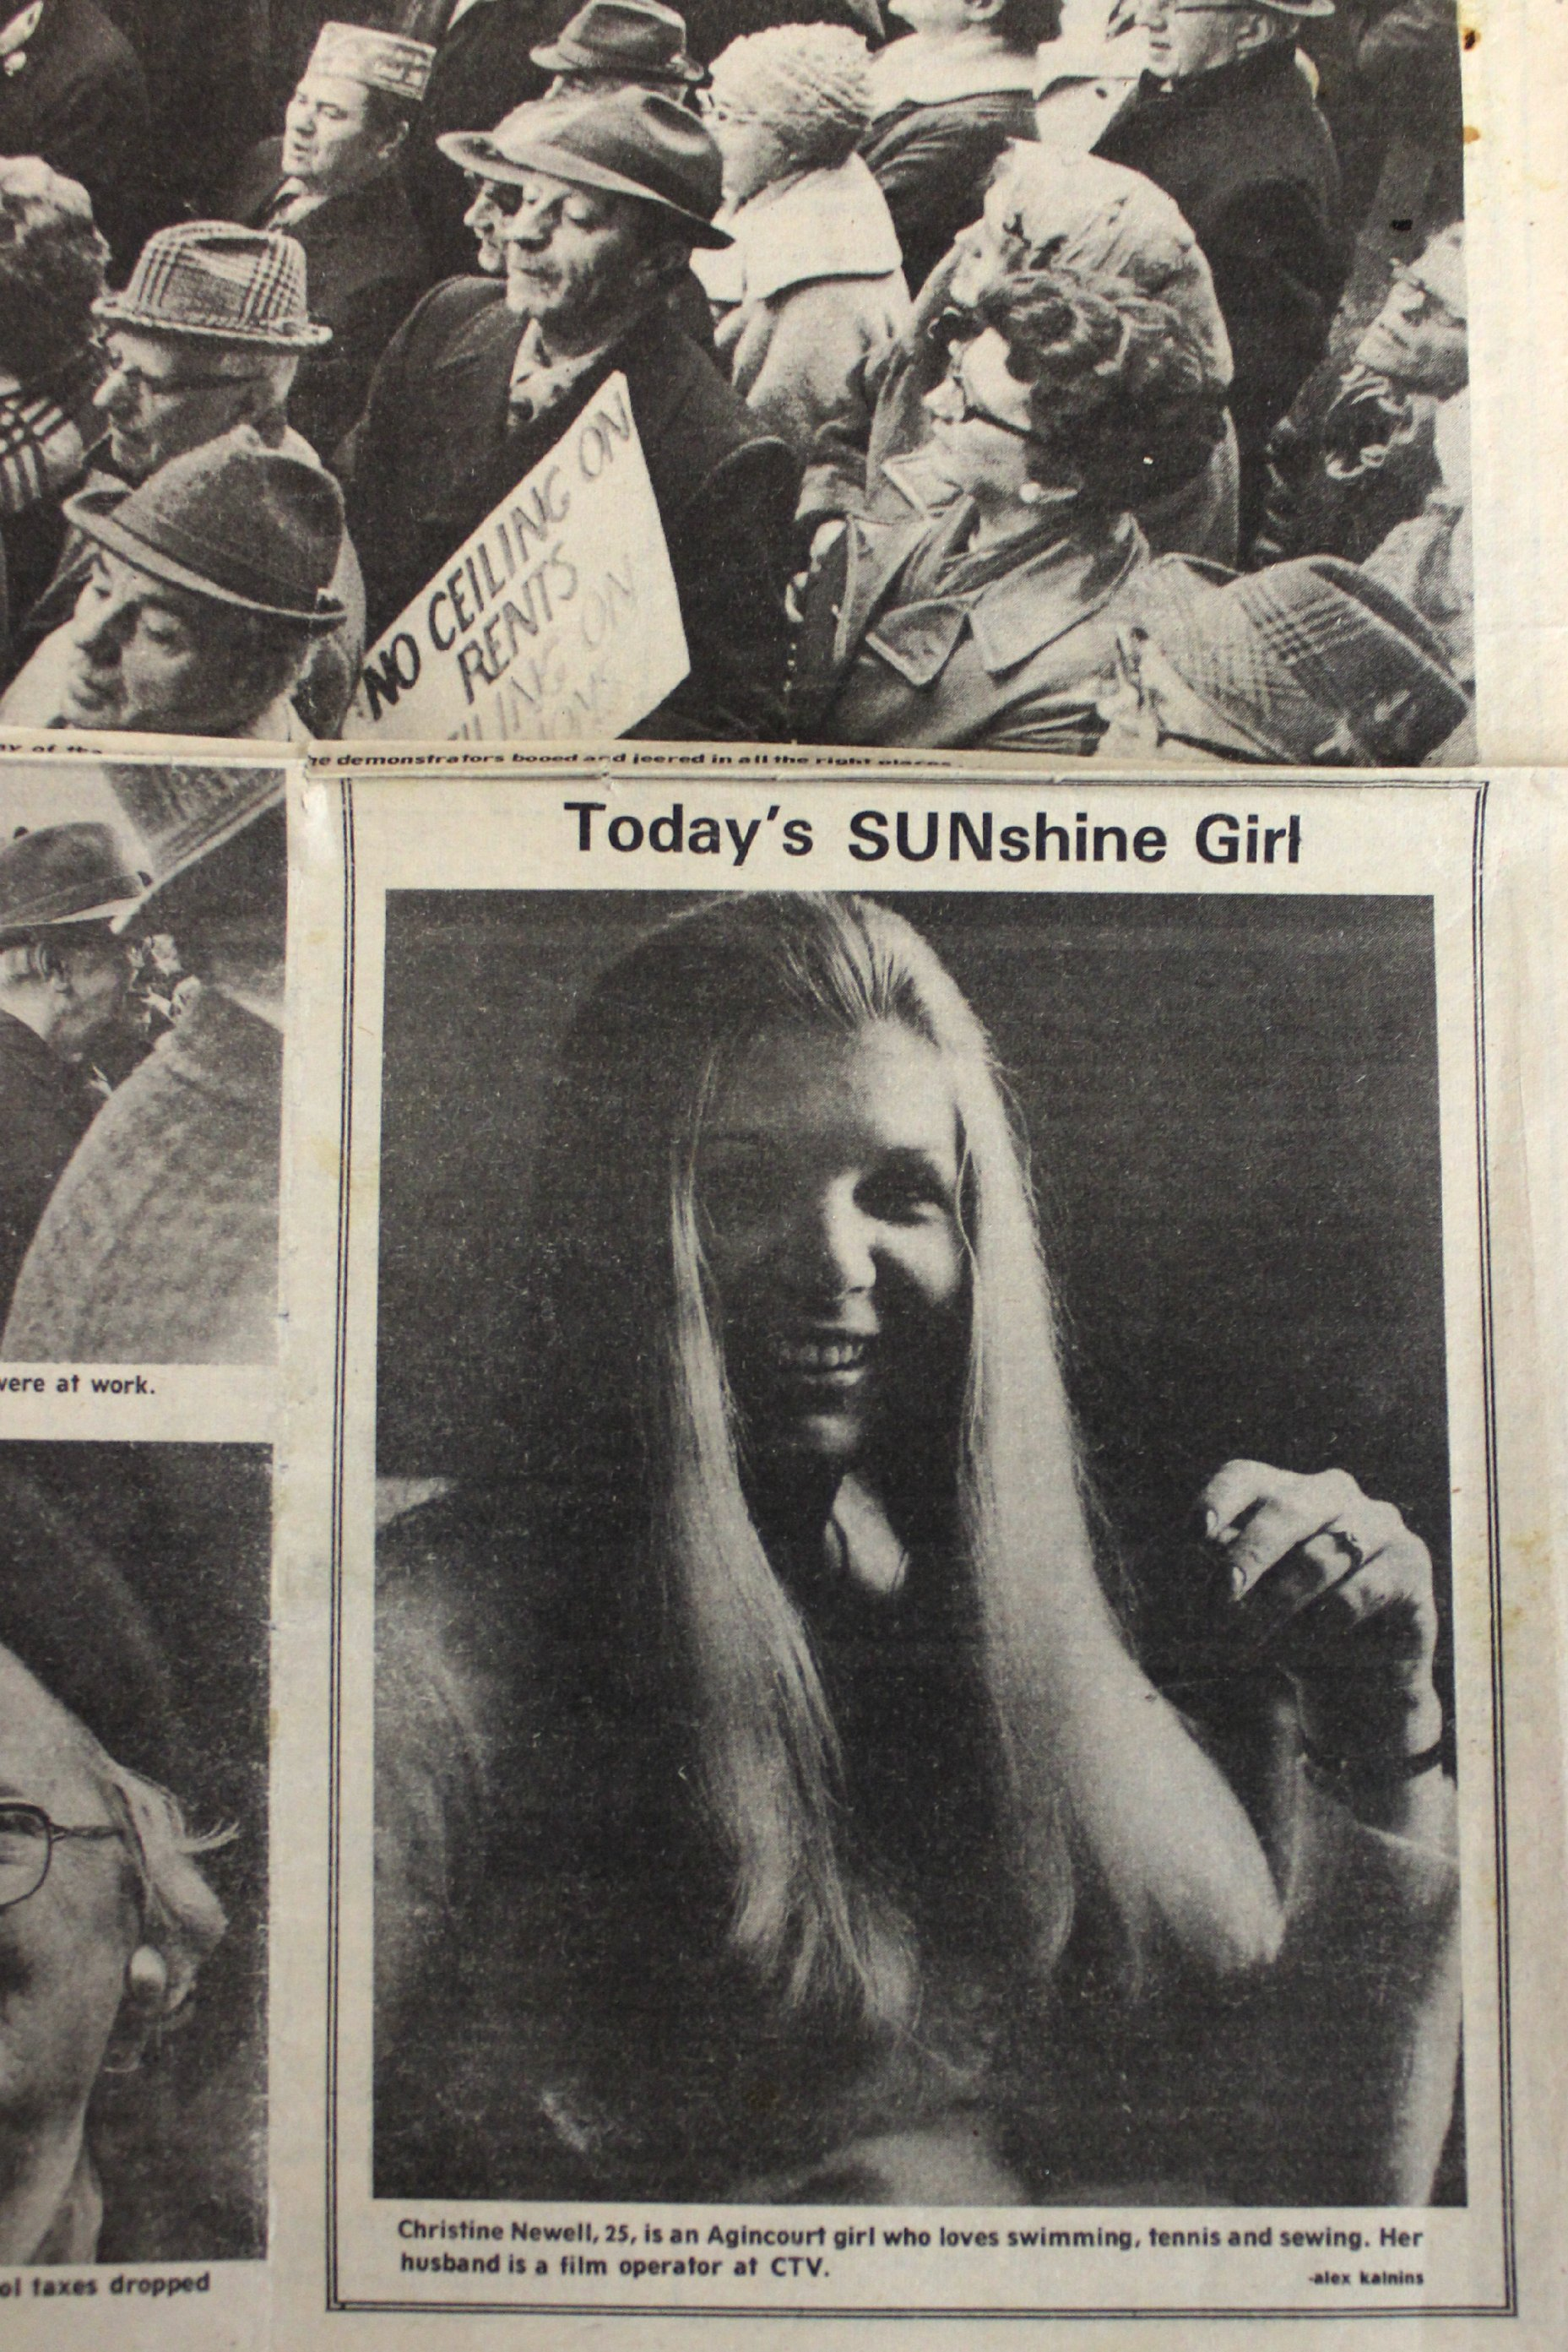 121212 Miss Sunshine Girl Christine Newell newspaper clipping